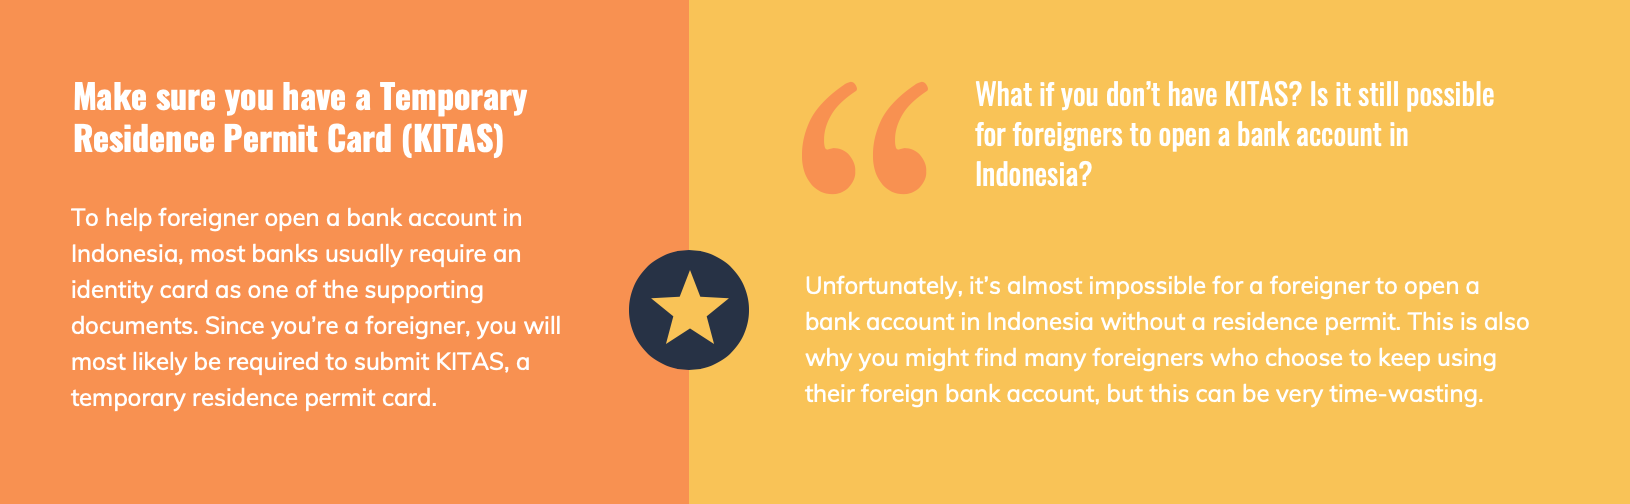 Infographic Foreigner Bank Account Senopati part 2